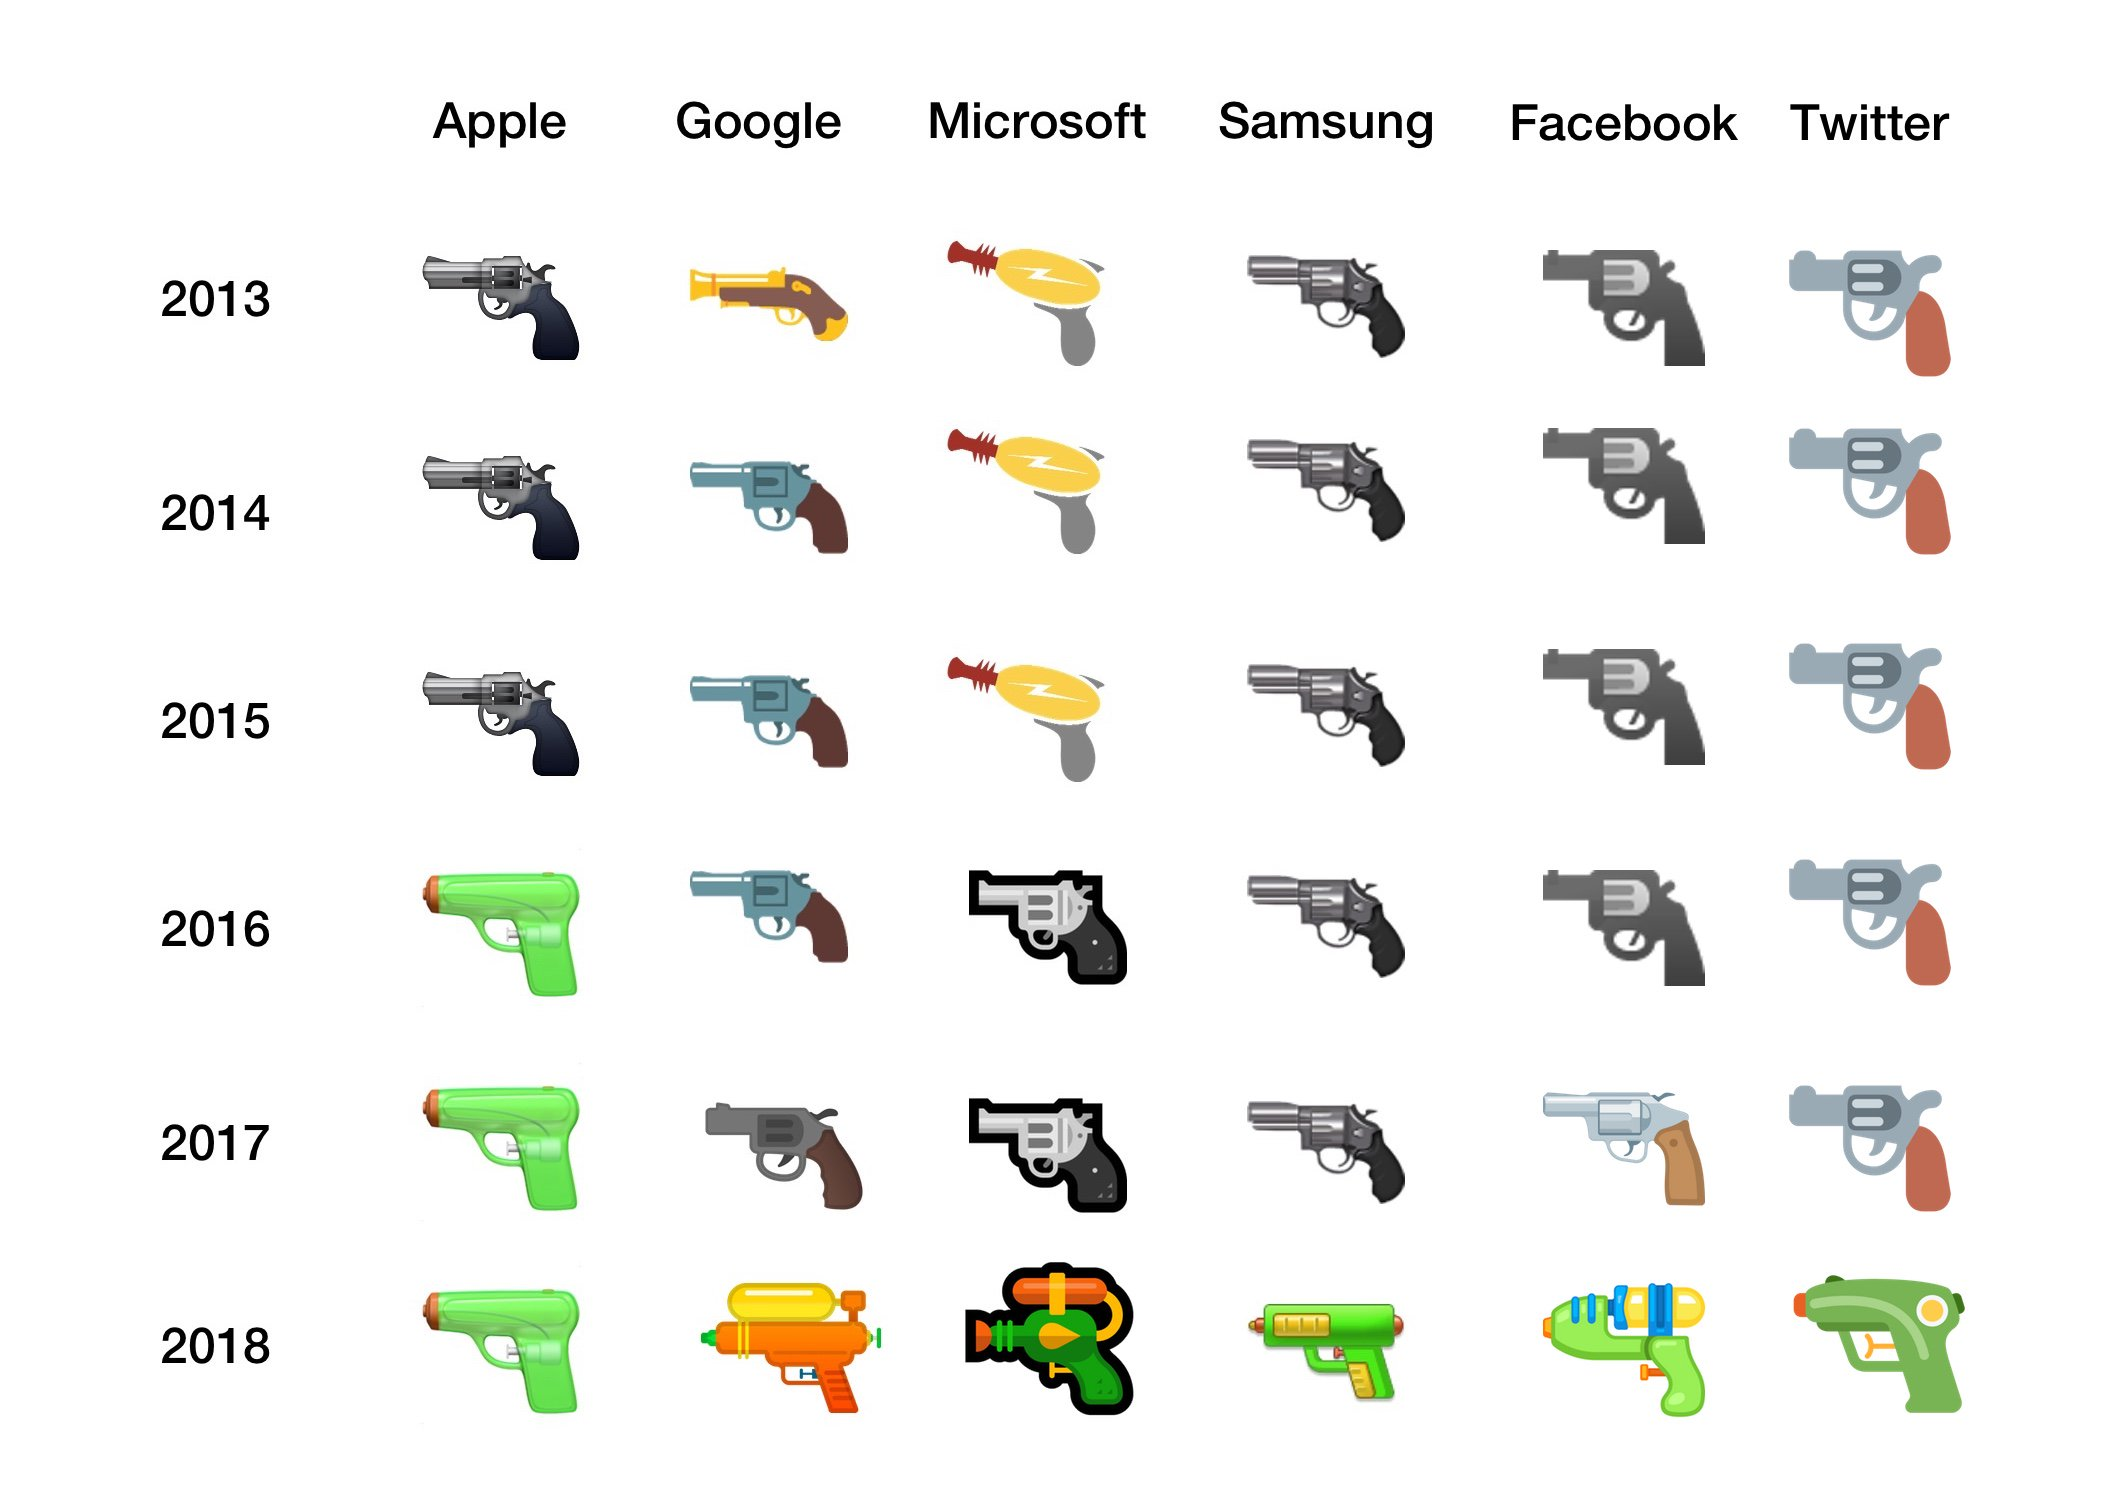 google-pistol-emojis-emojipedia-2012-2018-updated-microsoft-facebook-1